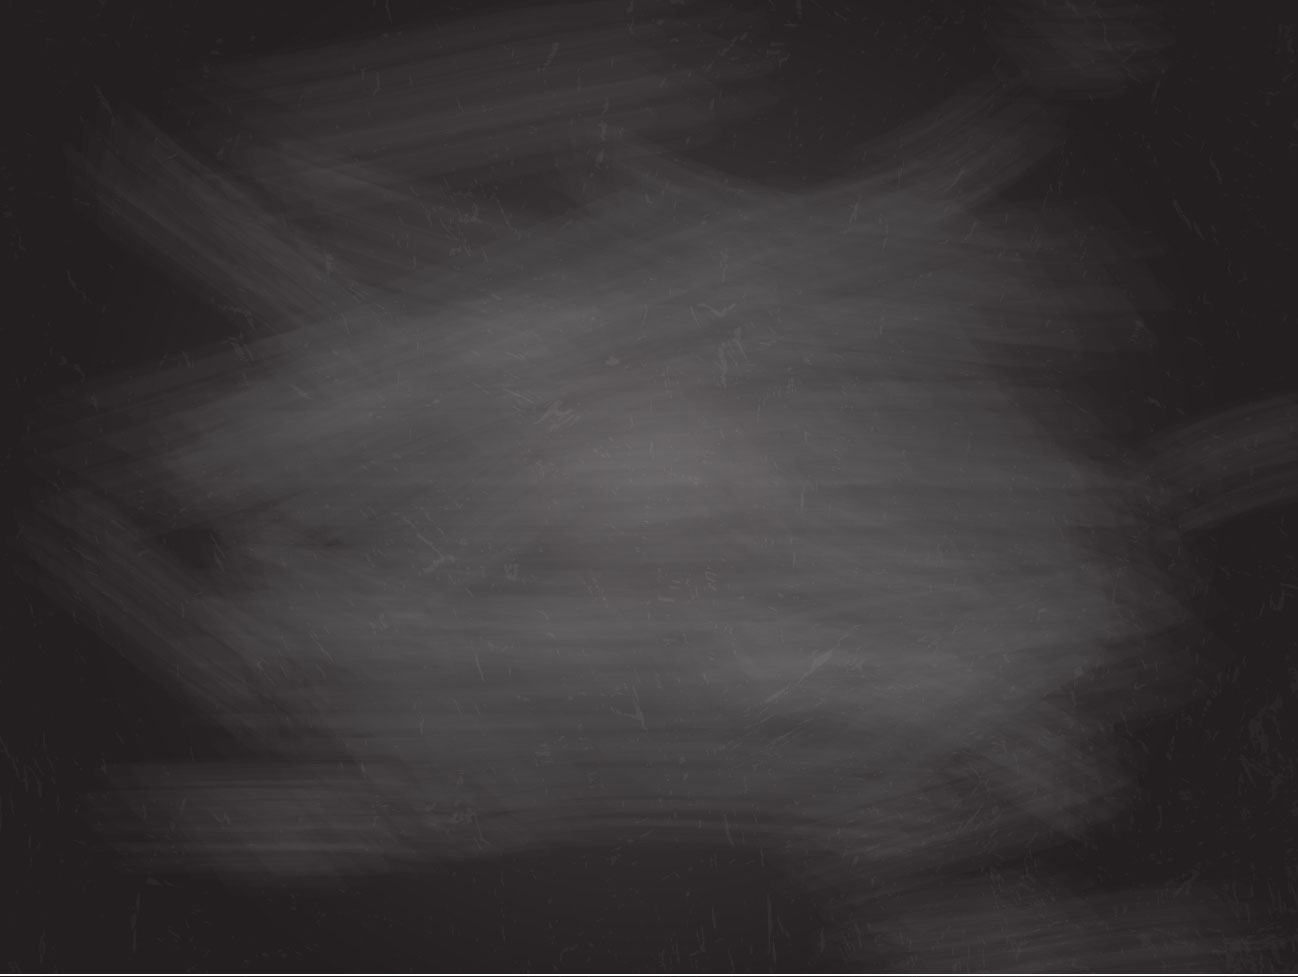 Abstract background with chalk board texture